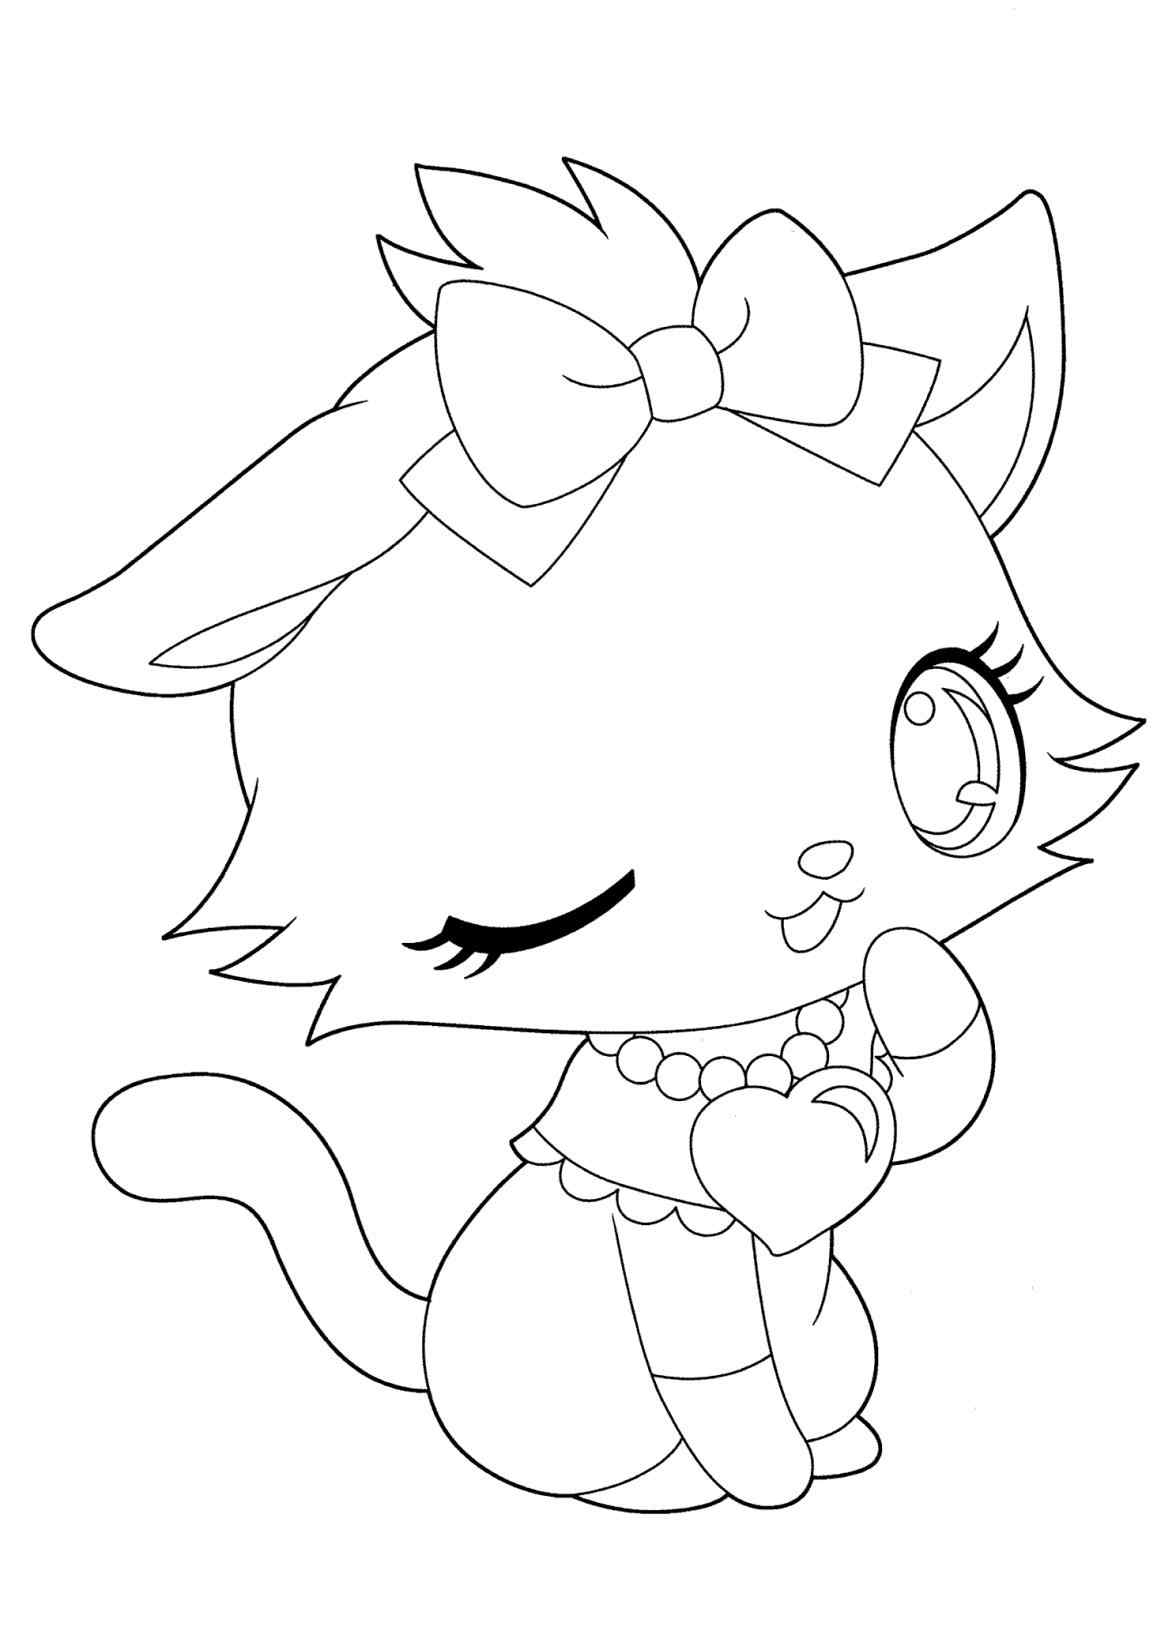 1172x1642 Anime Neko Couple Coloring Pages Online Coloring Printable